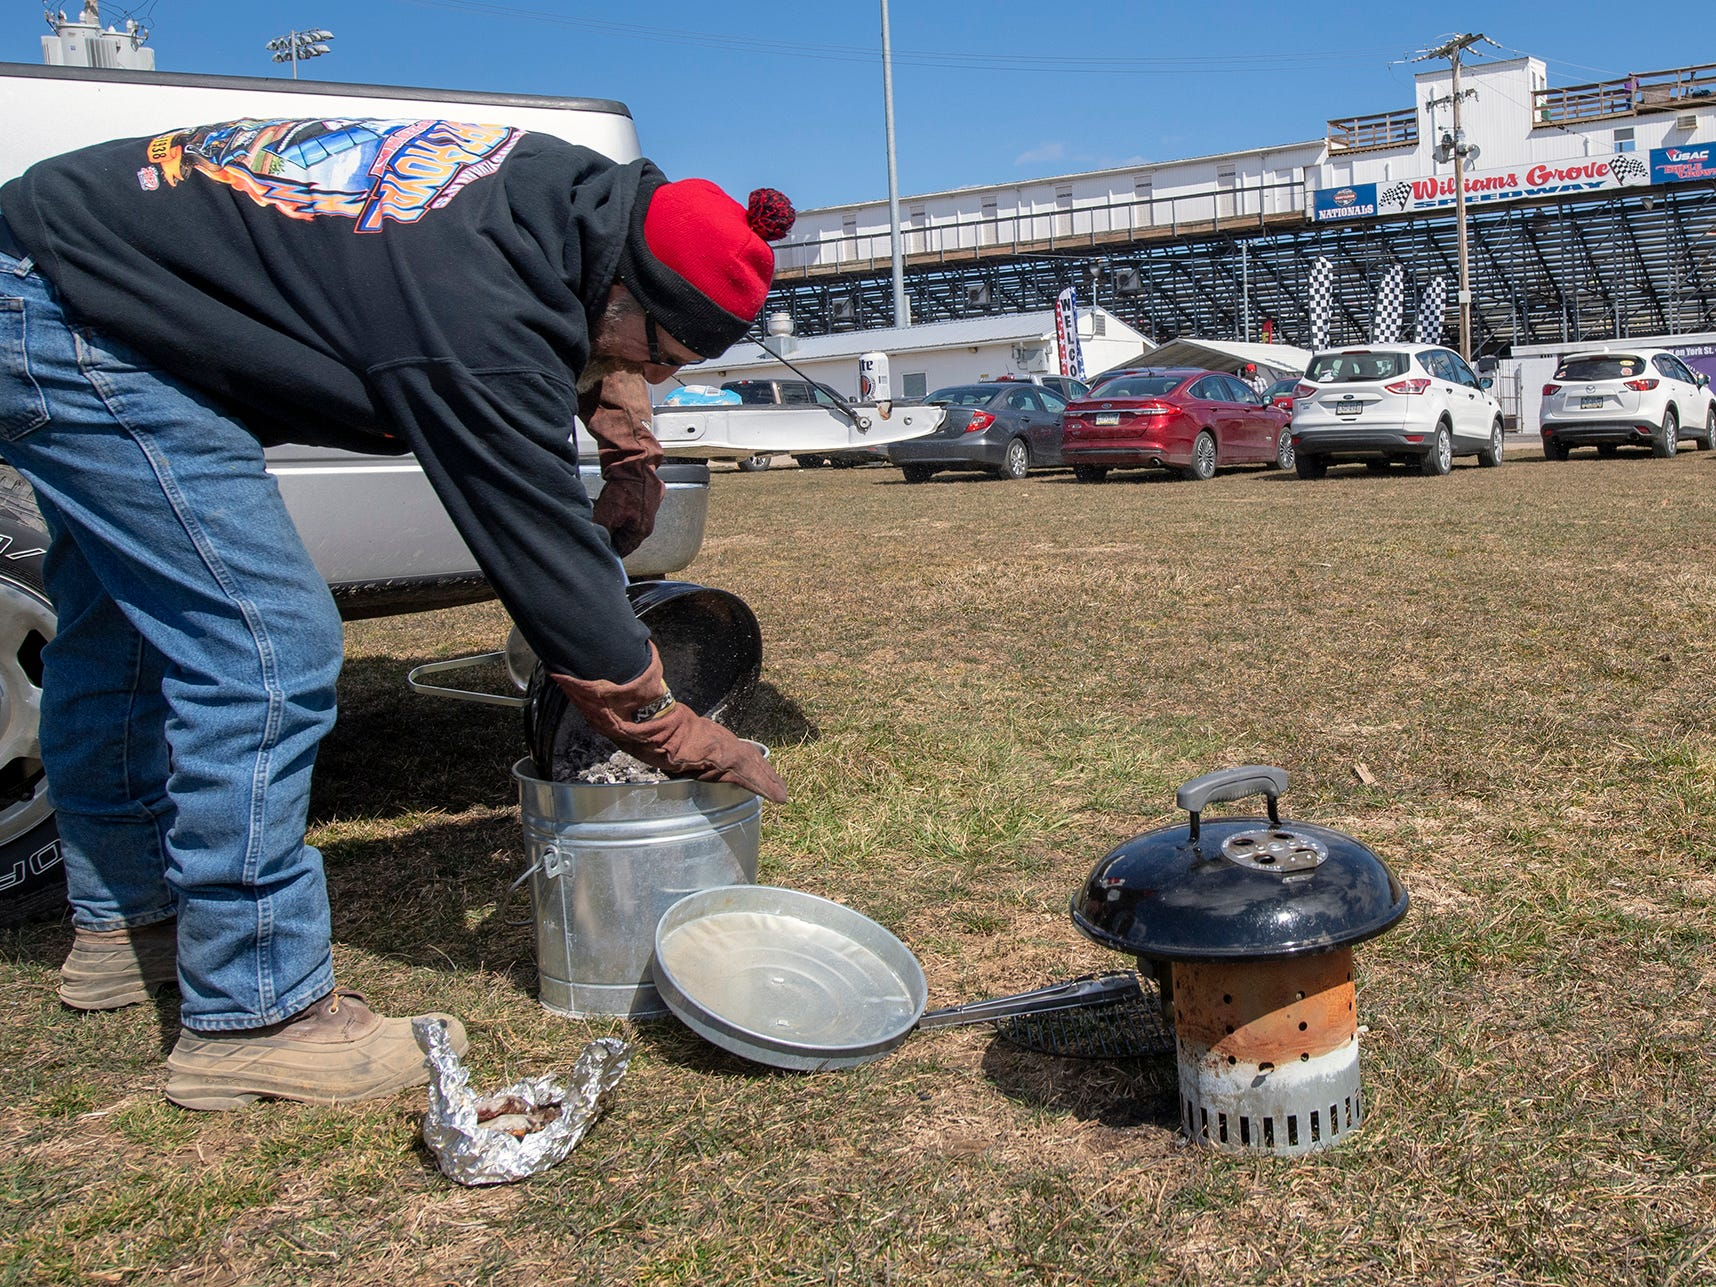 Bruce Reaser, of Schuylkill County, cooked burgers inthe parking lot for a tailgate party before the Williams Grove season opener for 410 sprints Sunday March 17, 2019.